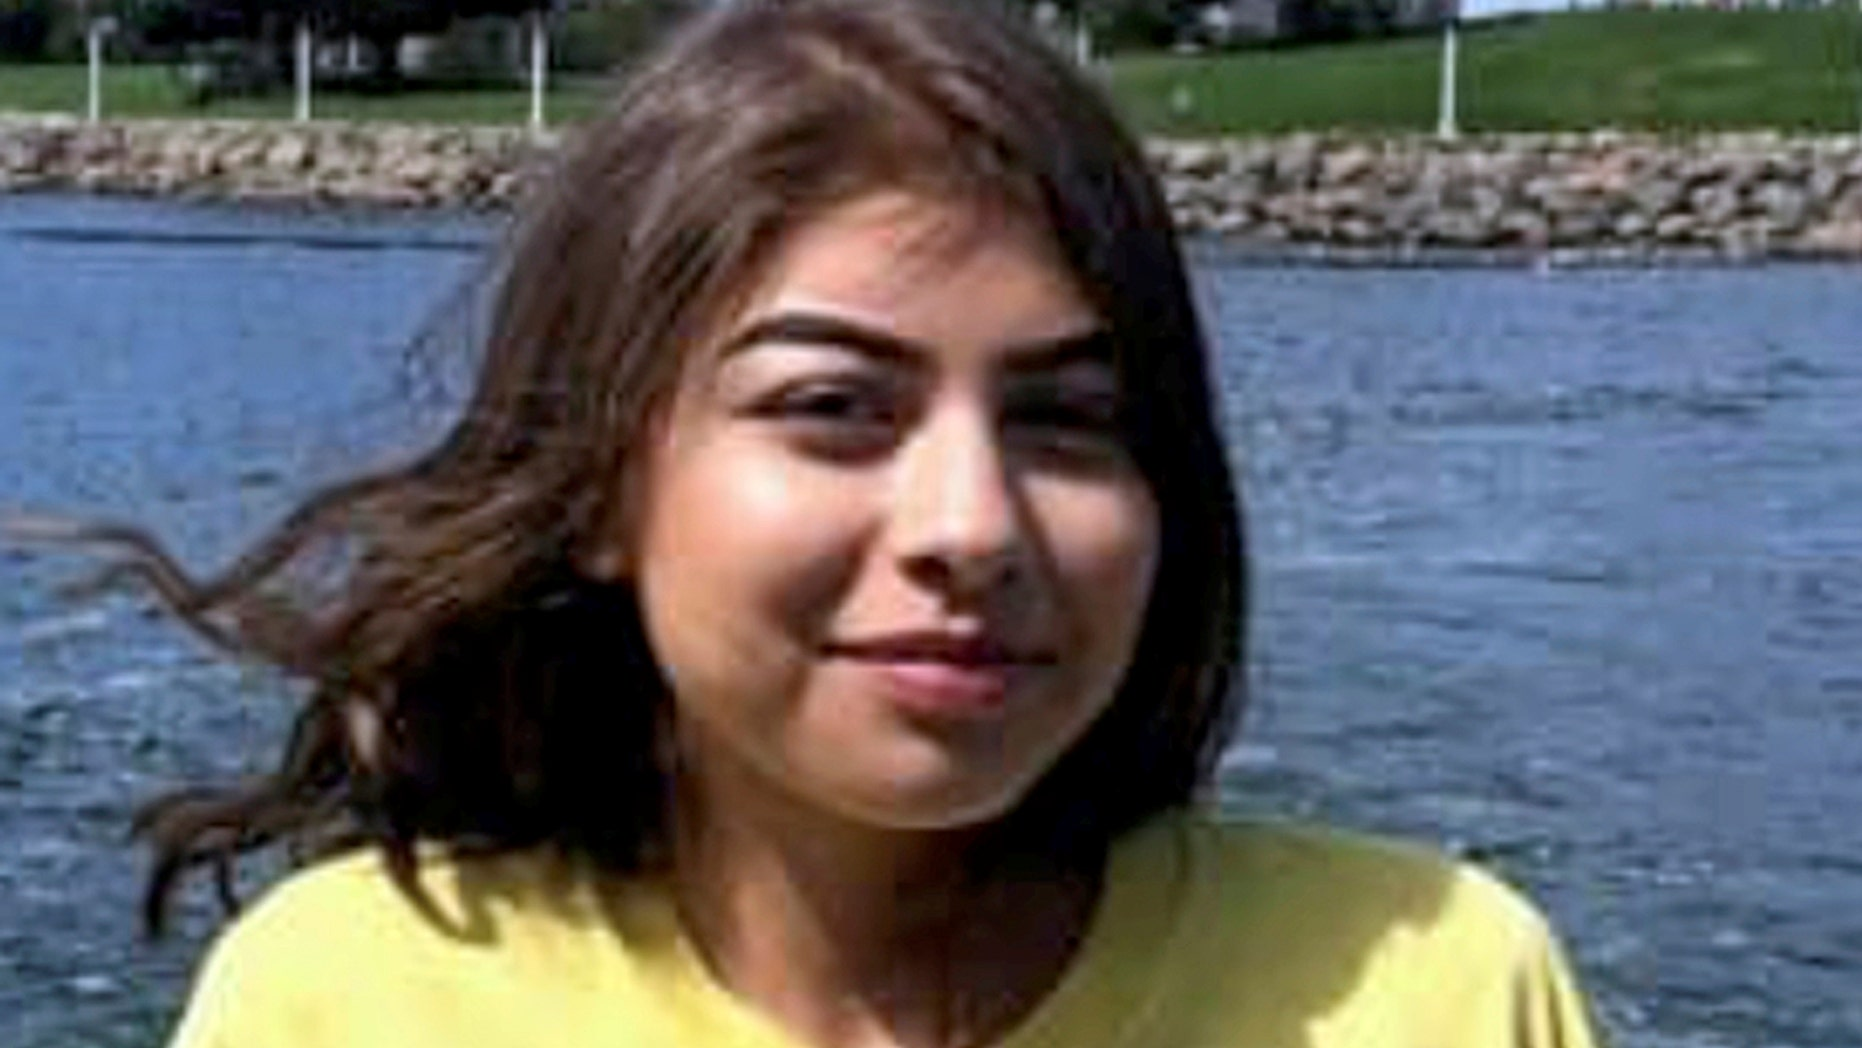 Two California brothers were arrested Monday on suspicion of killing Aranda Briones, a 16-year-old who disappeared last month. (Riverside County Sheriff's Office via AP)